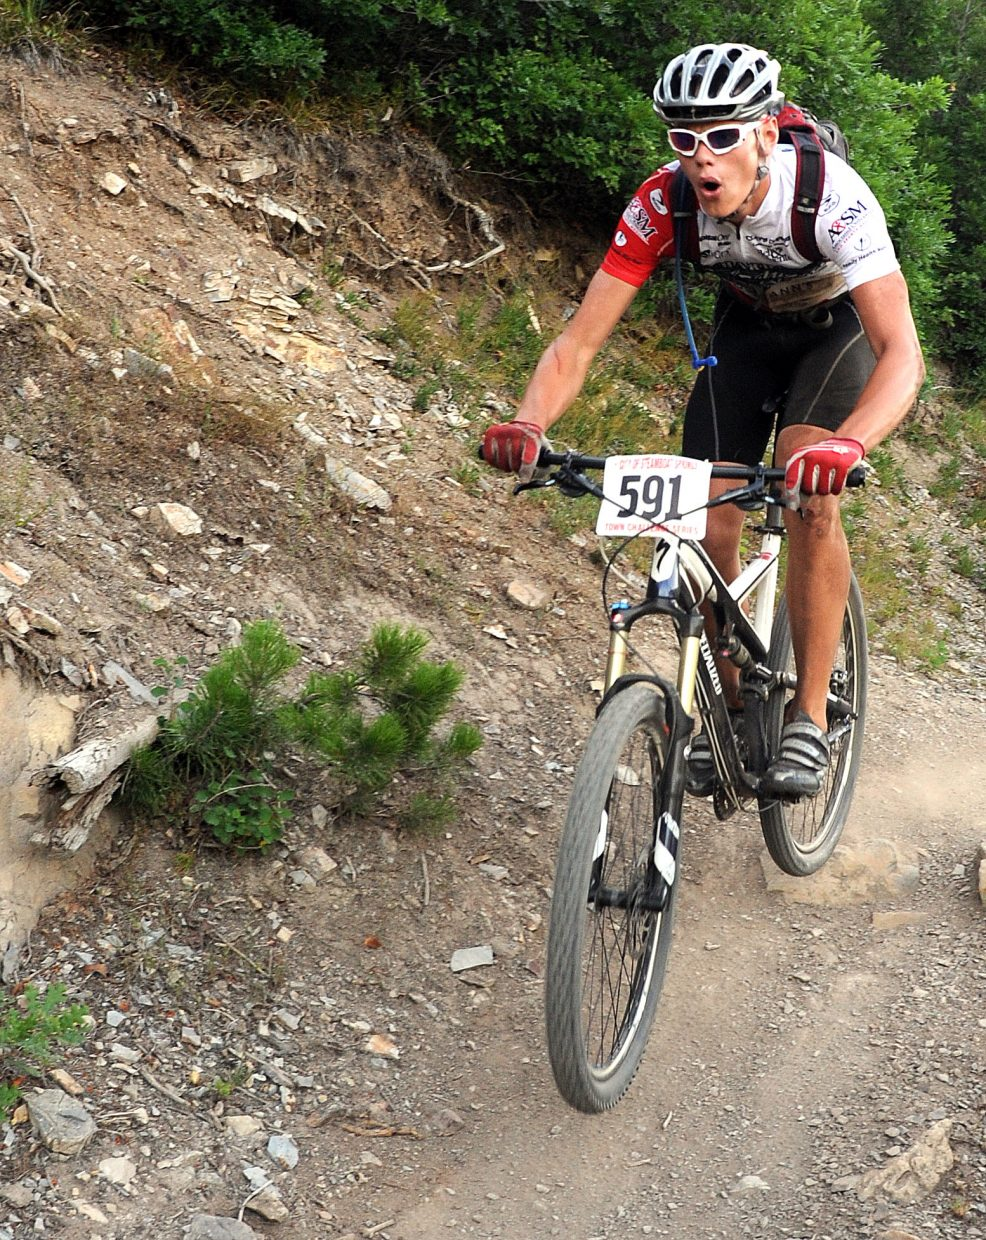 Grant Mills rides on Wednesday in a Town Challenge race on Emerald Mountain.